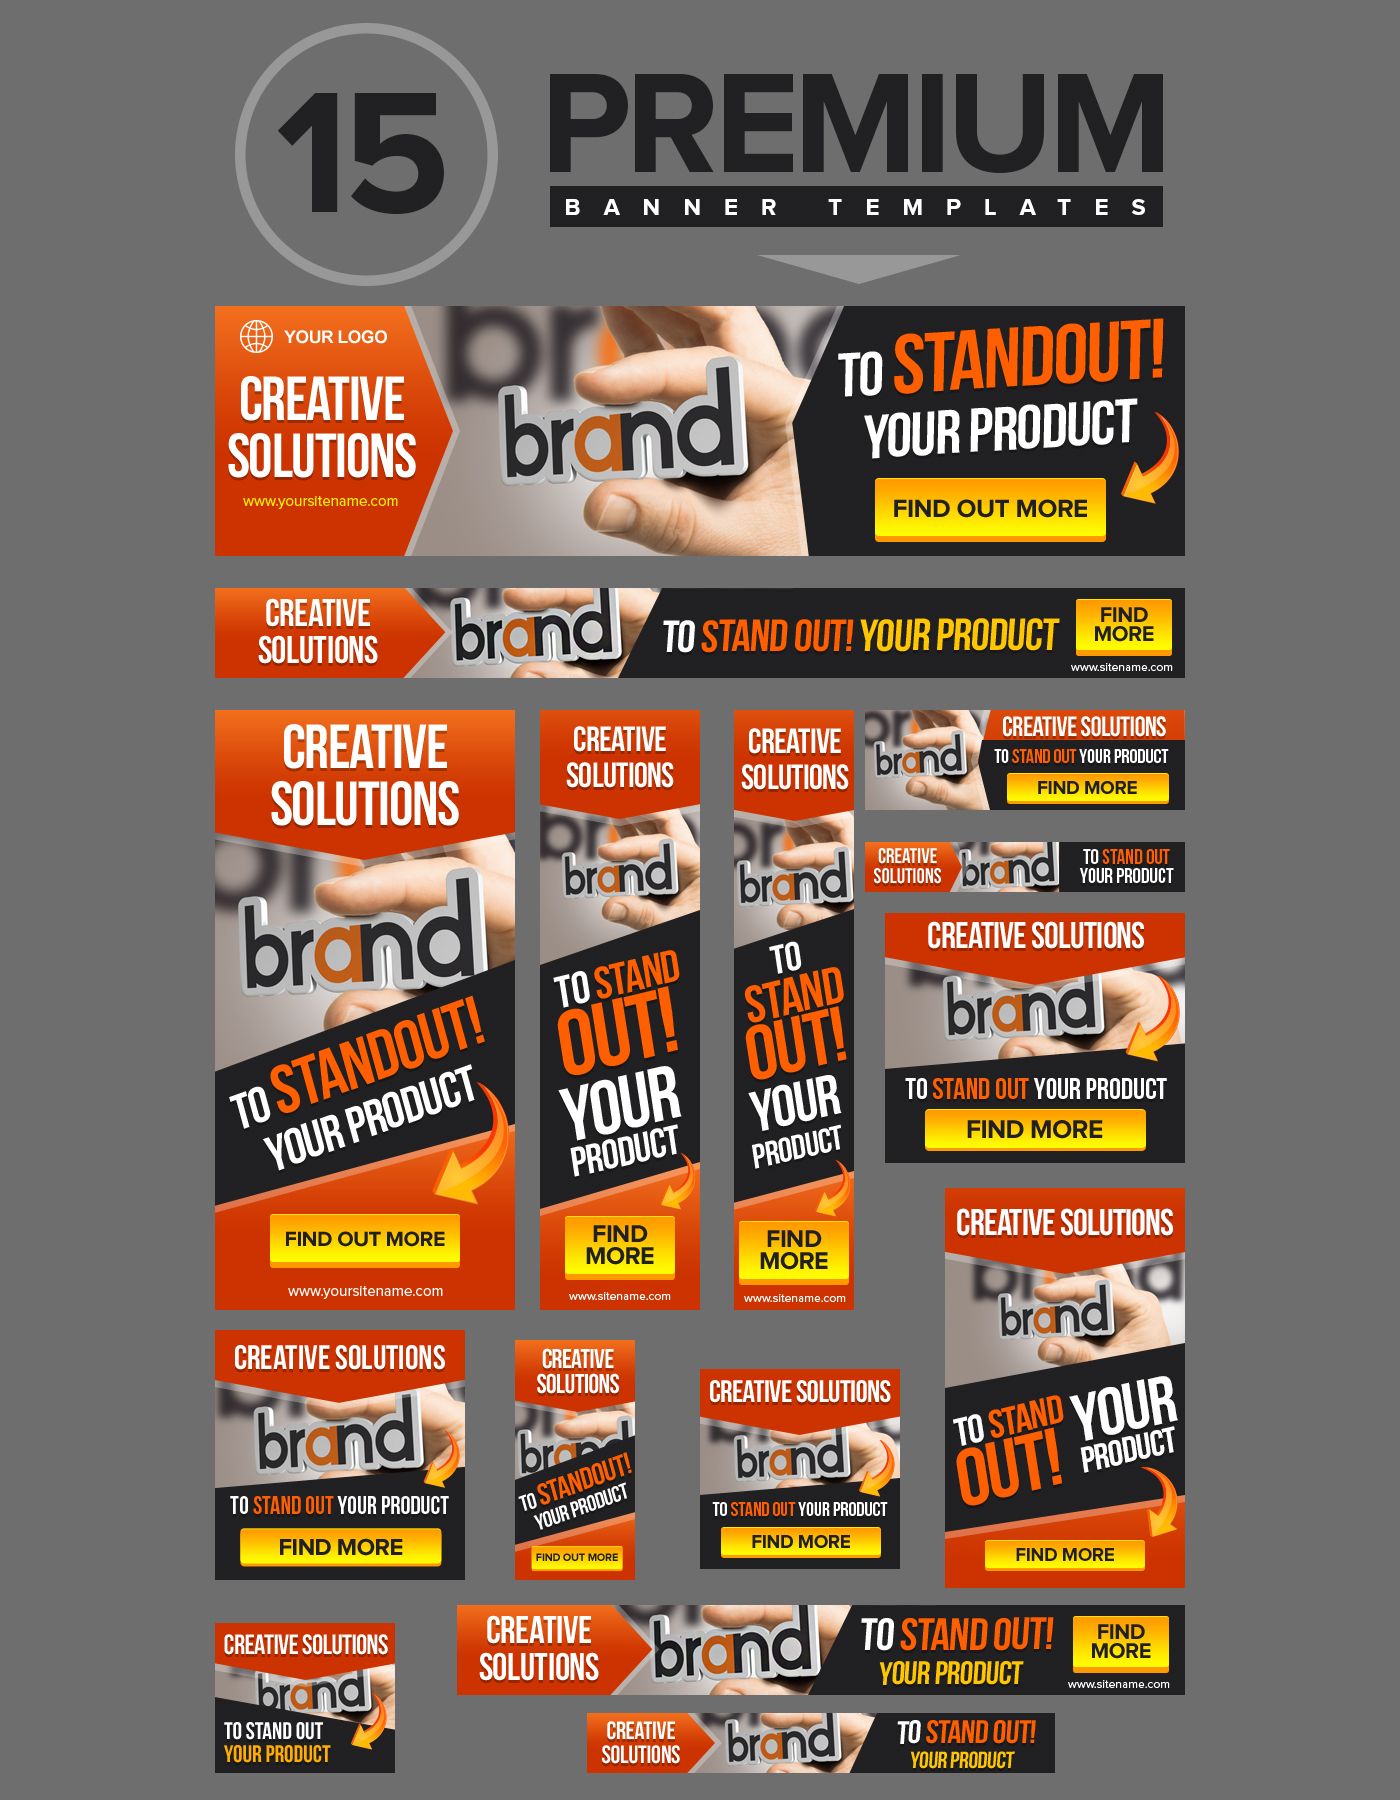 banners banner designs advertising banners Advertising  Google banners Web Banners